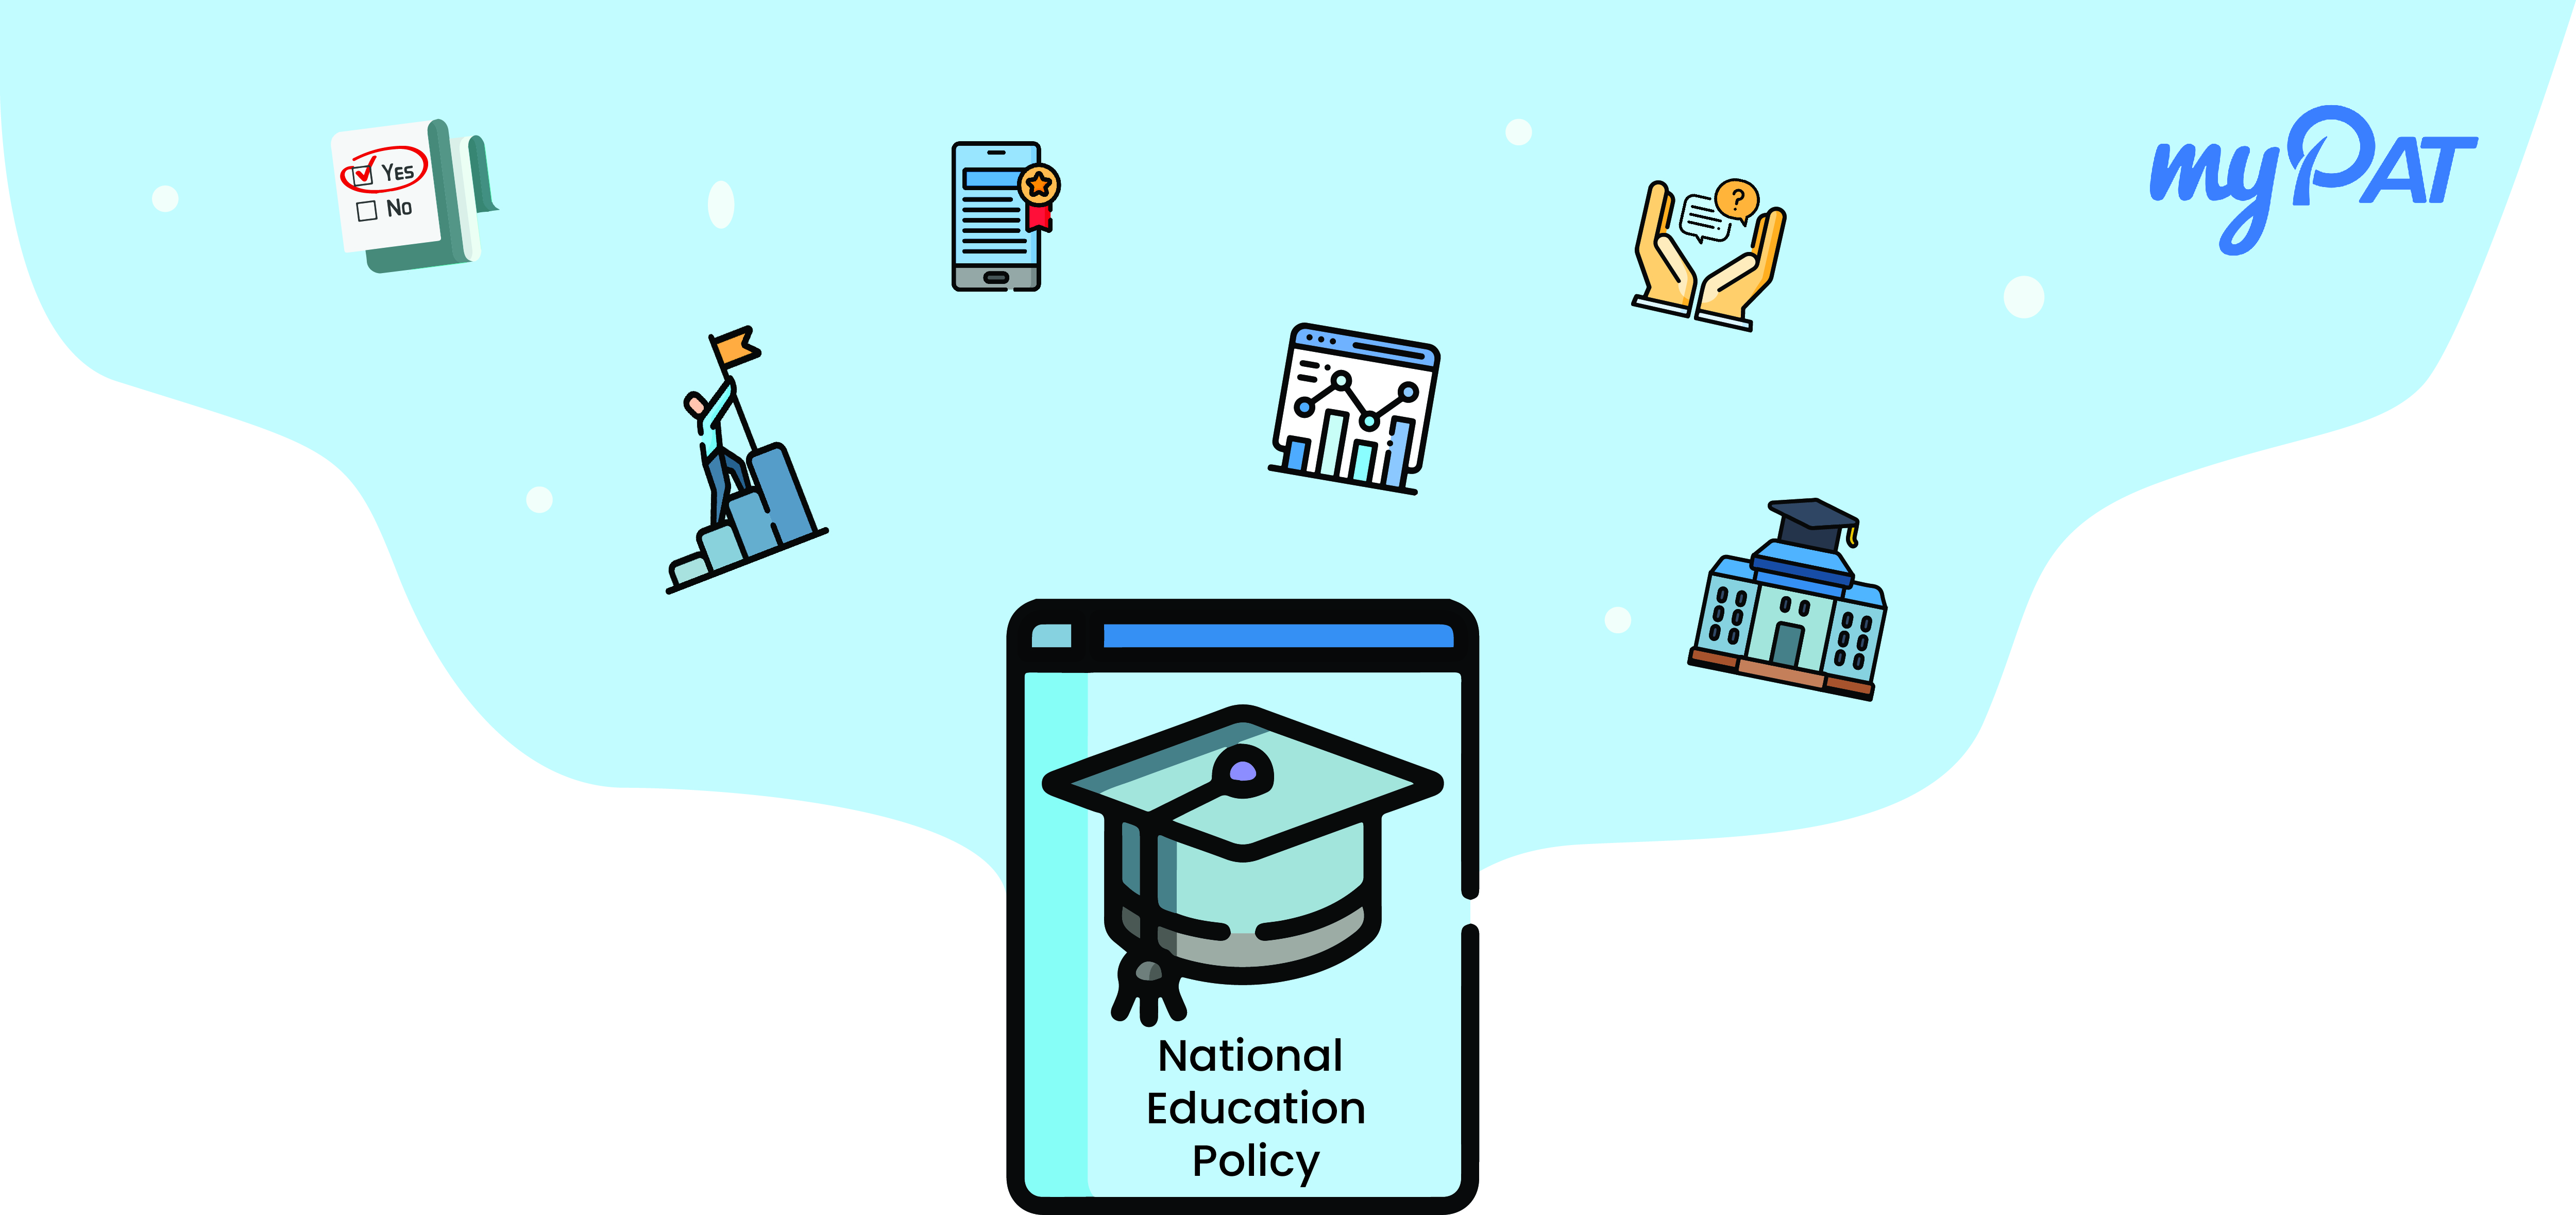 National Education Policy aims at making optimum utilization of assessments